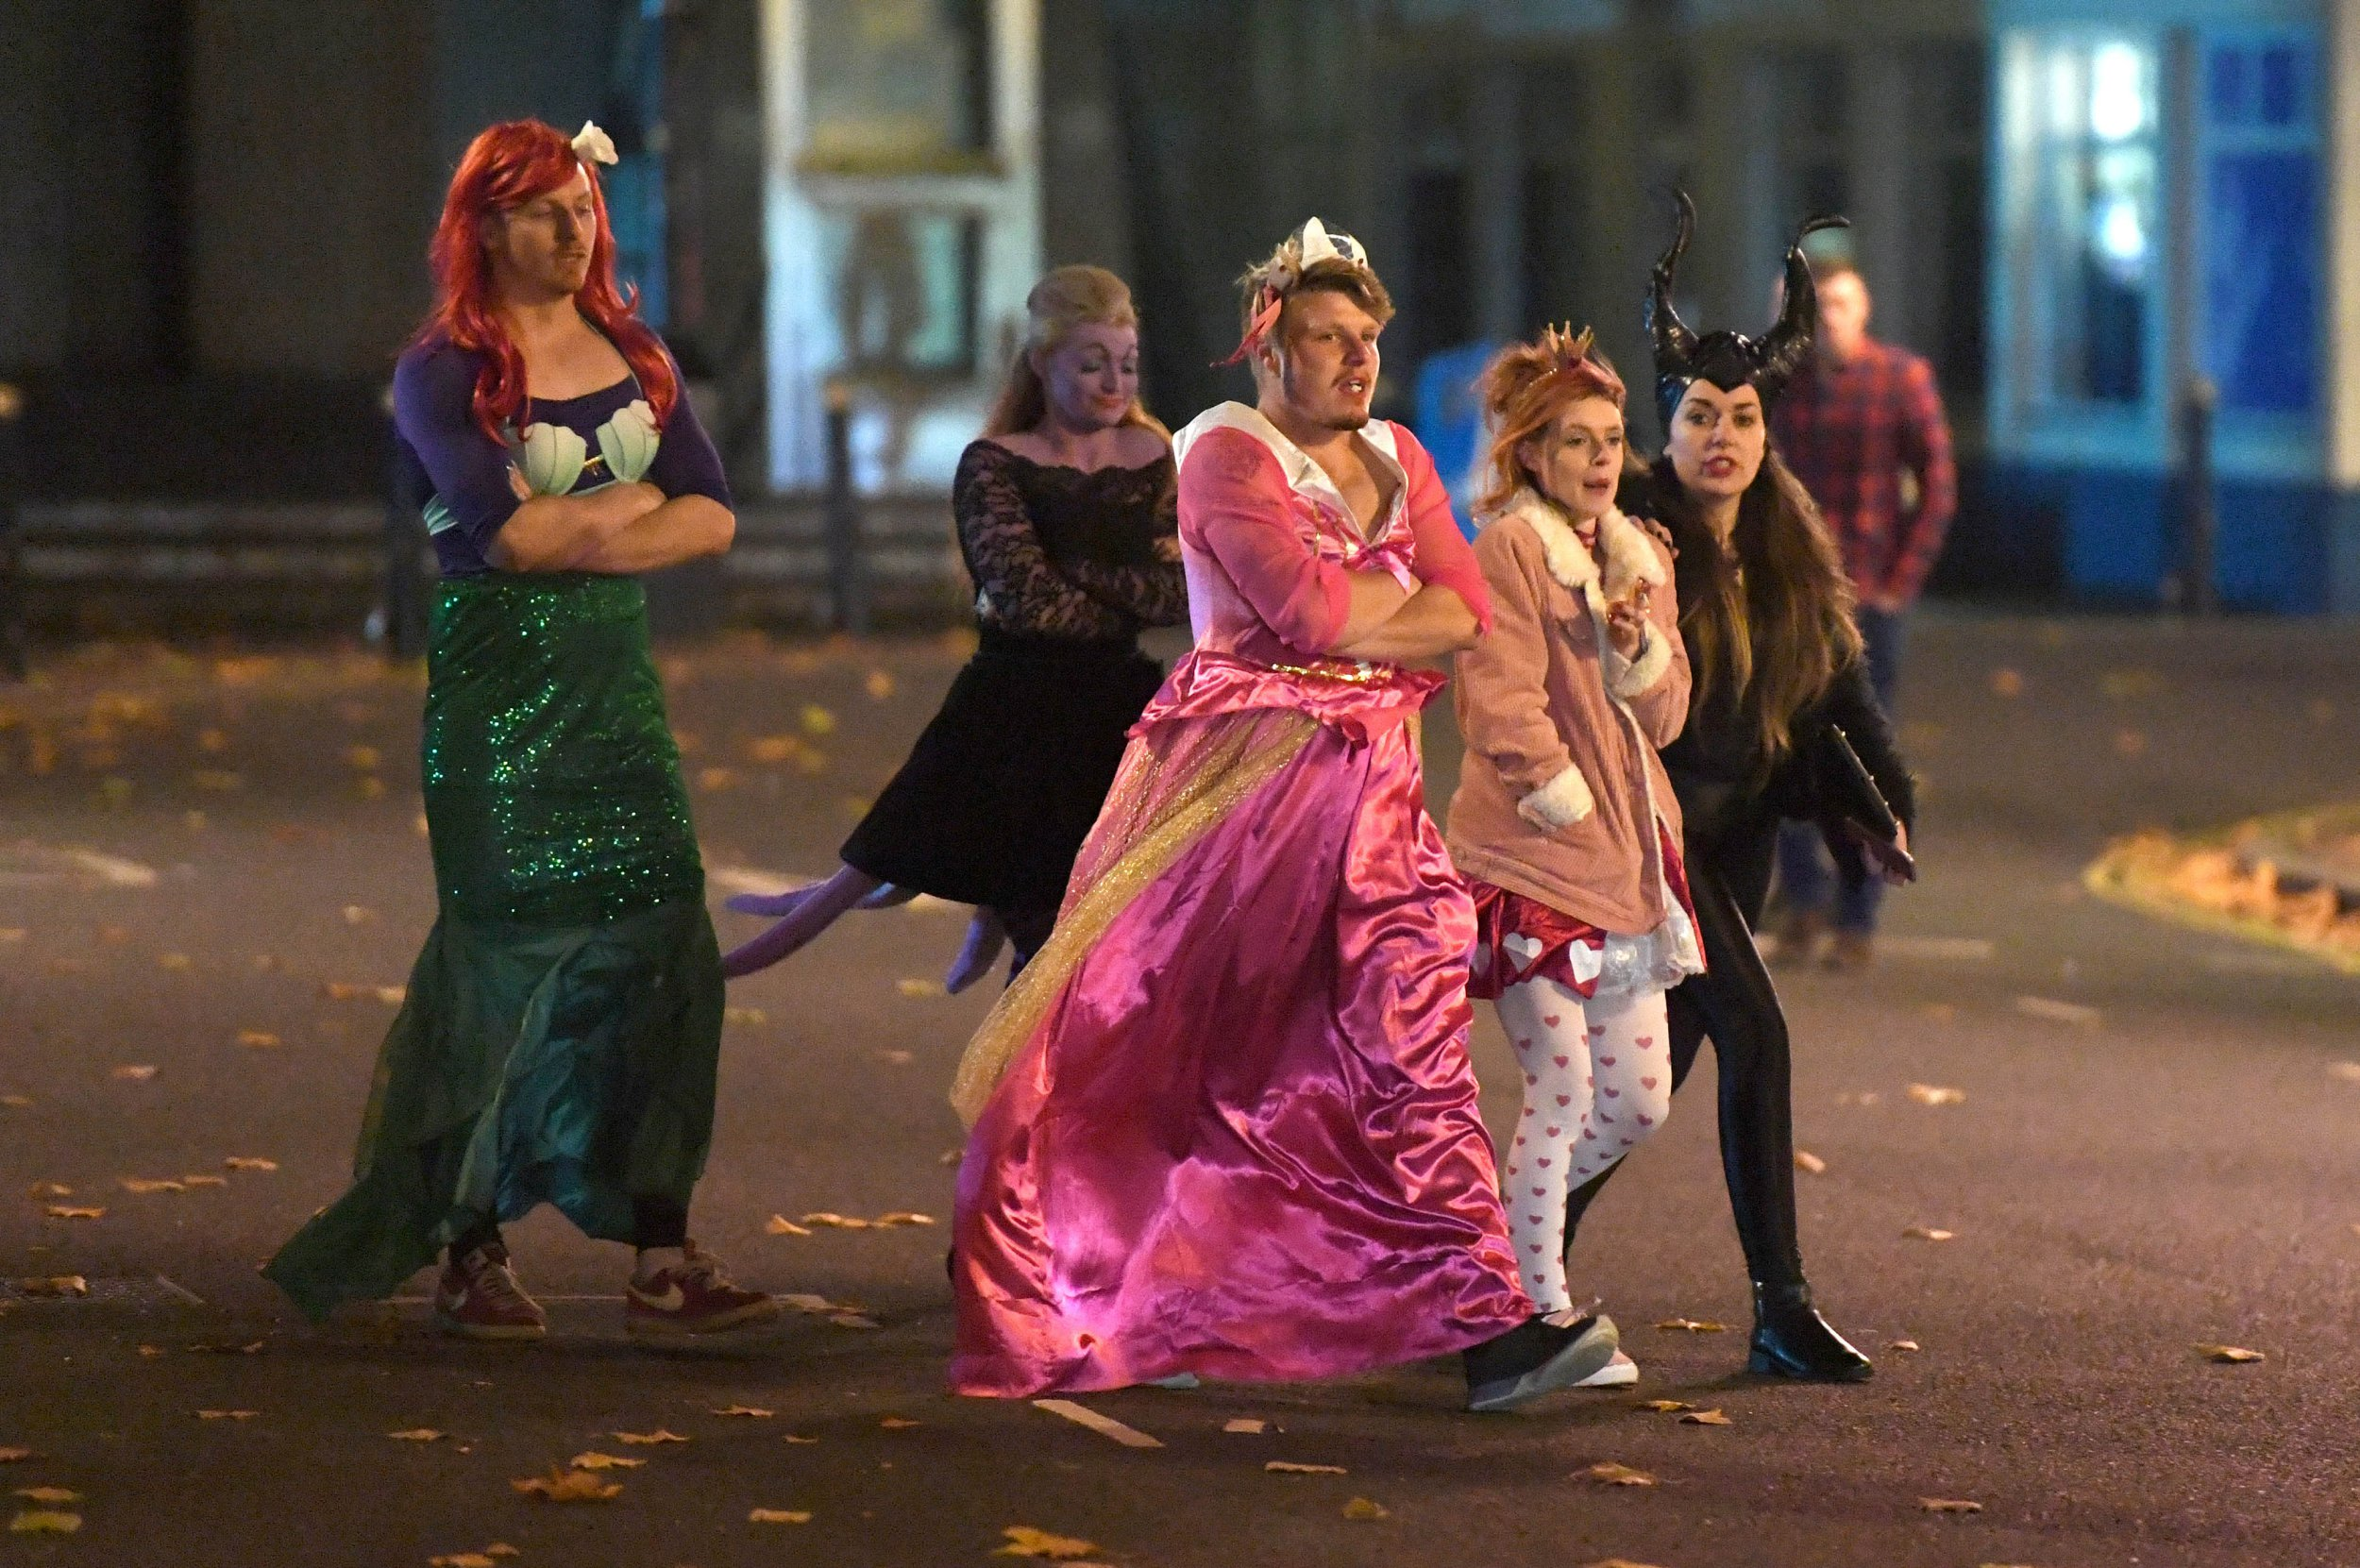 Pictured late Saturday night into Sunday morning 28/10/18 are revellers in Portsmouth, Hampshire in Halloween costumes making the most of the pubs, bars and clubs in Guildhall Walk, Portsmouth. A mermaid and Princess Please credit: Paul Jacobs/pictureexclusive.com Standard reproduction rates apply, contact Paul Jacobs, Picture Exclusive to arrange payment - 07923 866166, pictureexclusive@gmail.com